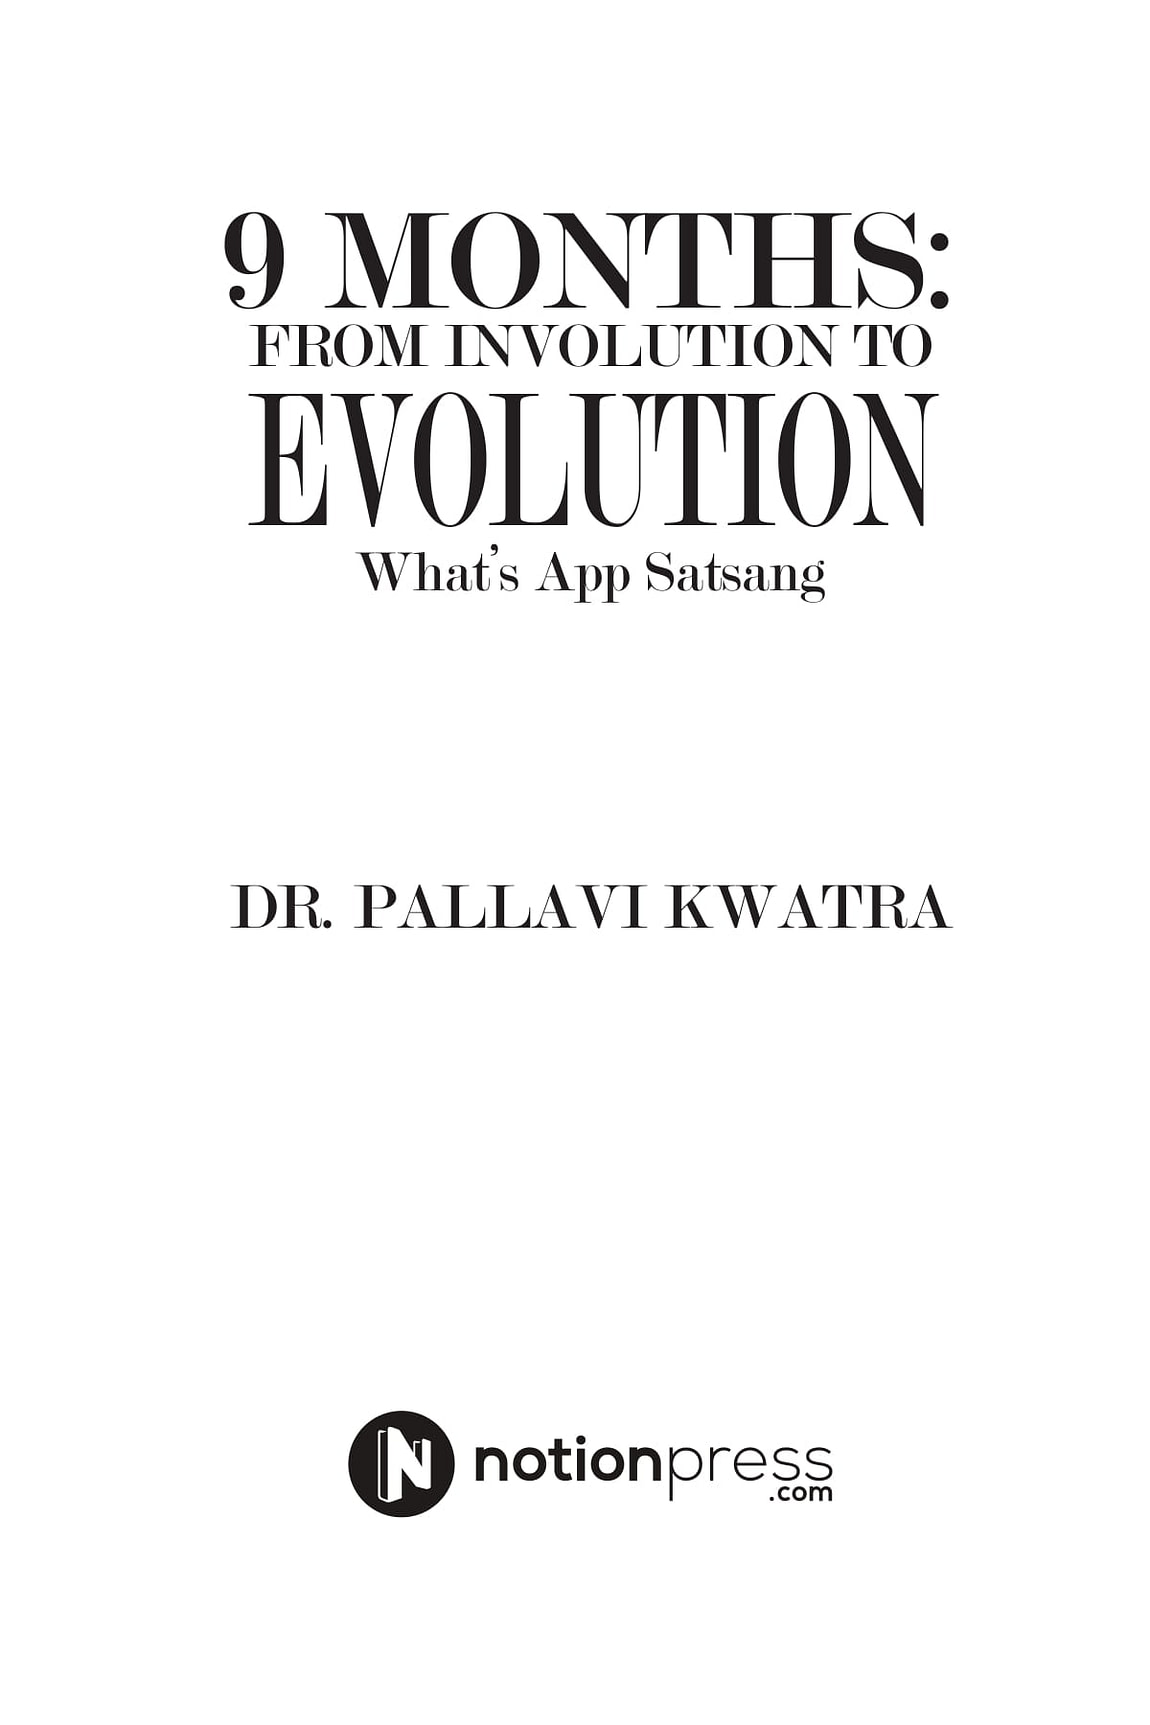 9-Months-From-Involution-to-Evolution-Book-By-Dr-Pallavi-Kwatra-003.jpg